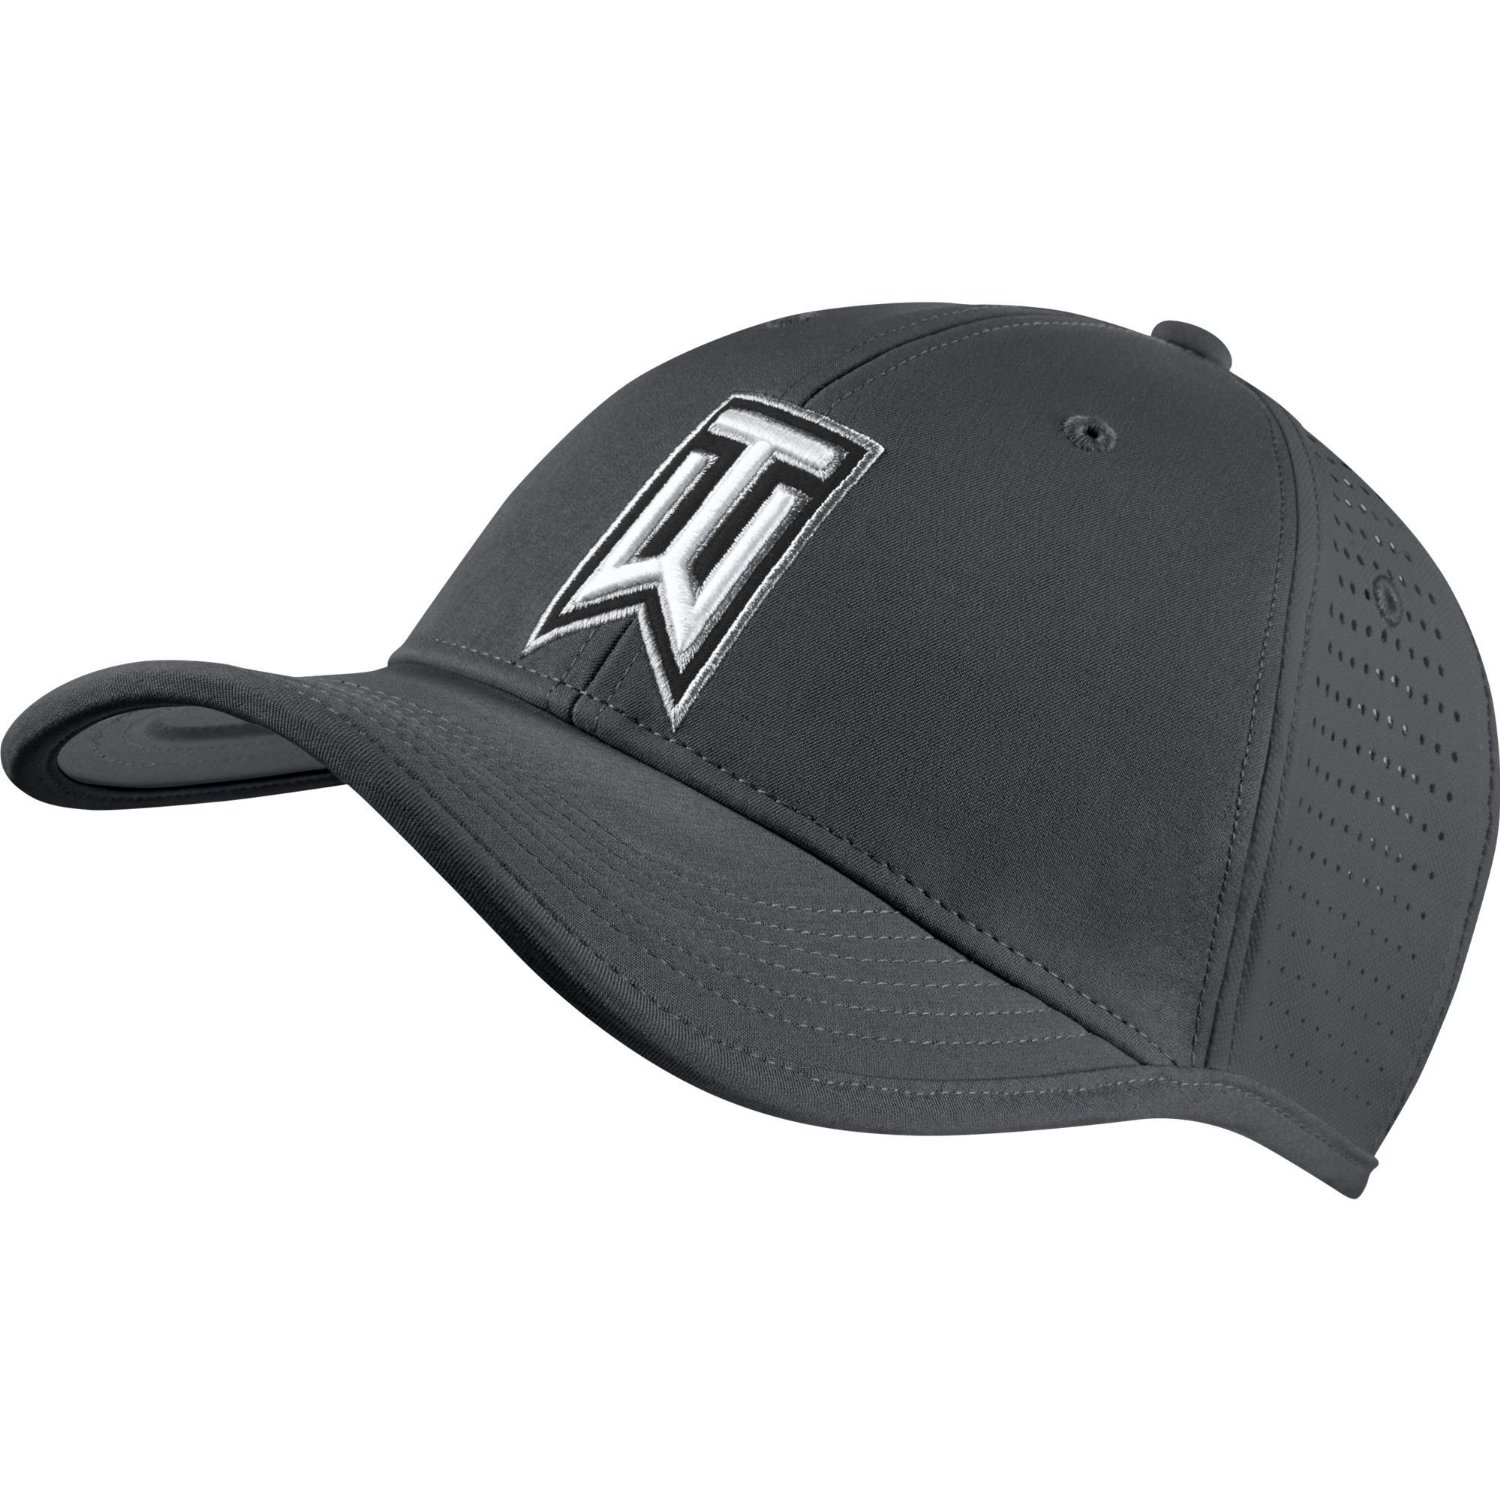 3cce07e13f6a3 NEW Nike Tiger Woods Ultralight Tour Perforated Grey Black Adjustable Hat  Cap